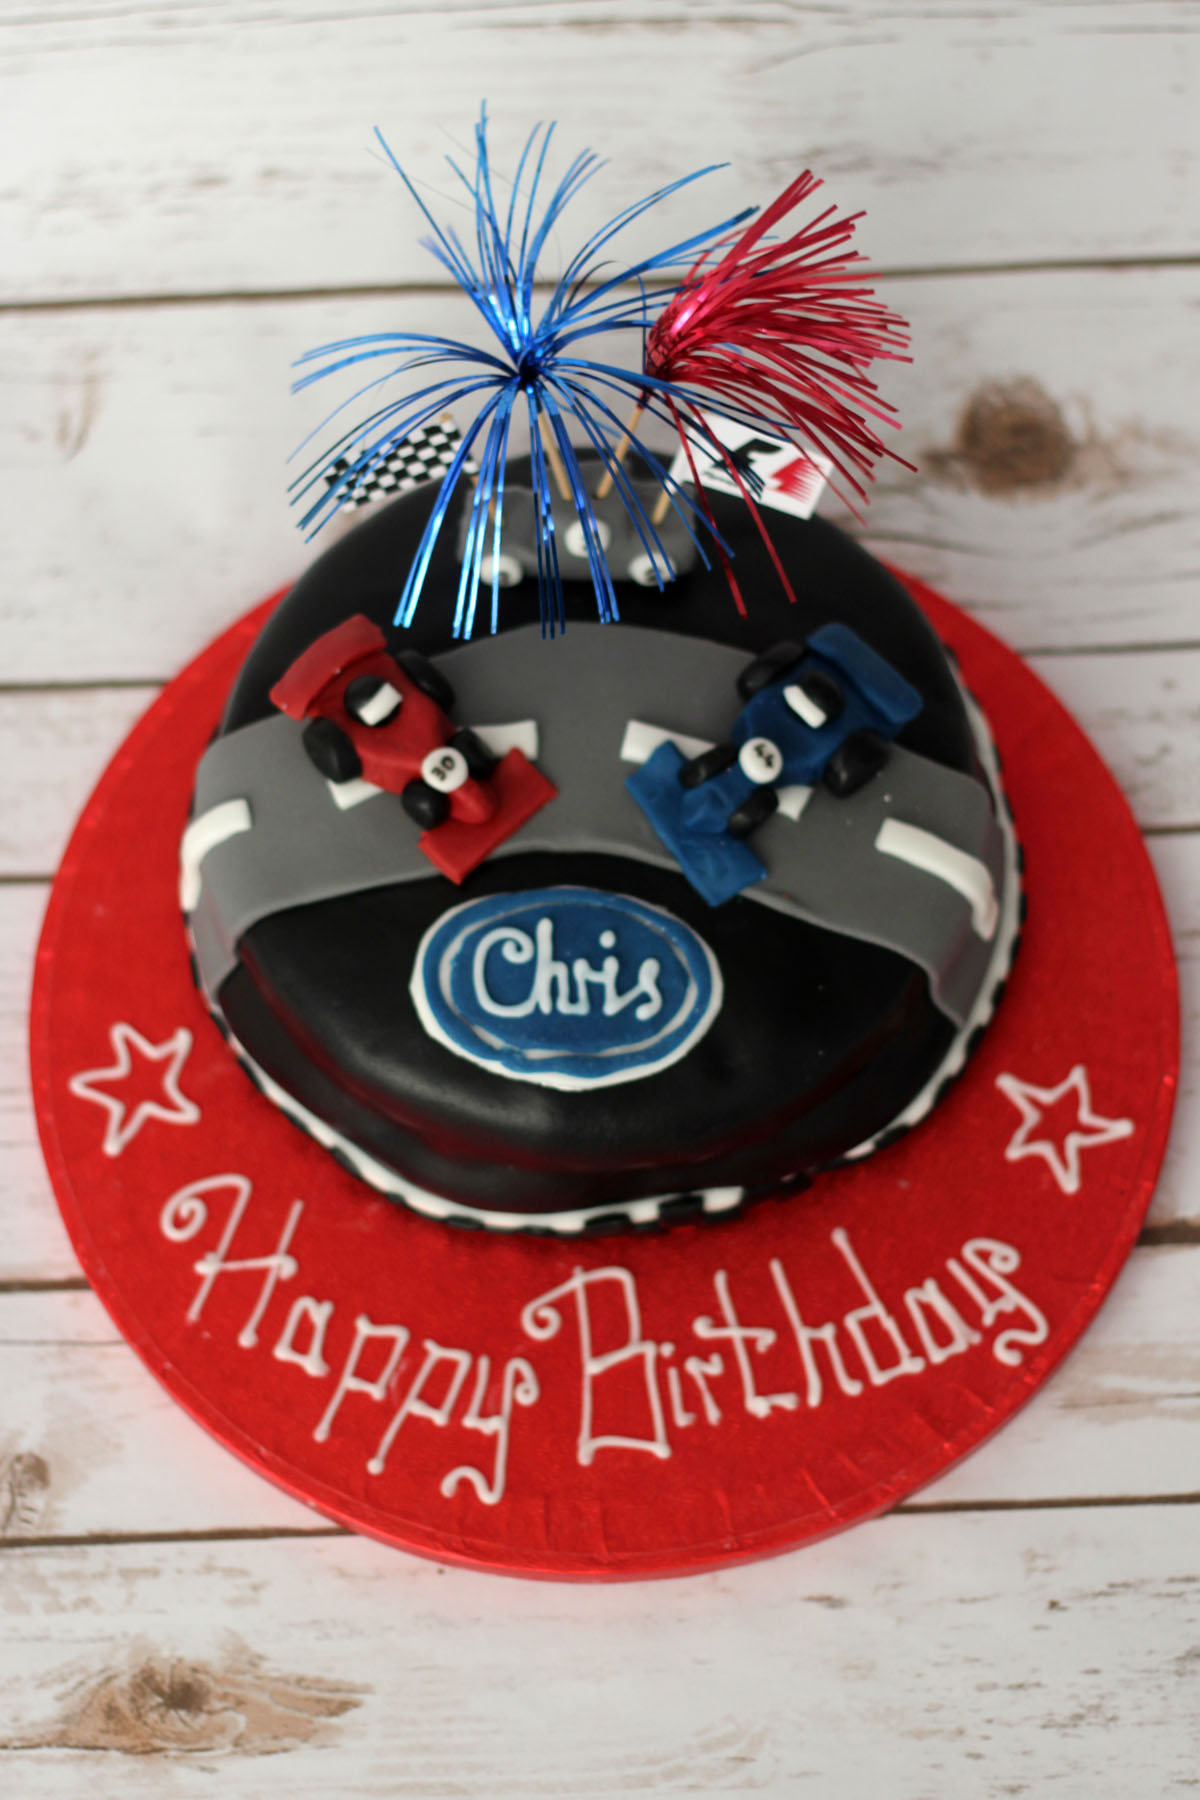 Formula 1 Cake Design – an entry into Cake Club at Kerry Cooks Blog, July 2015